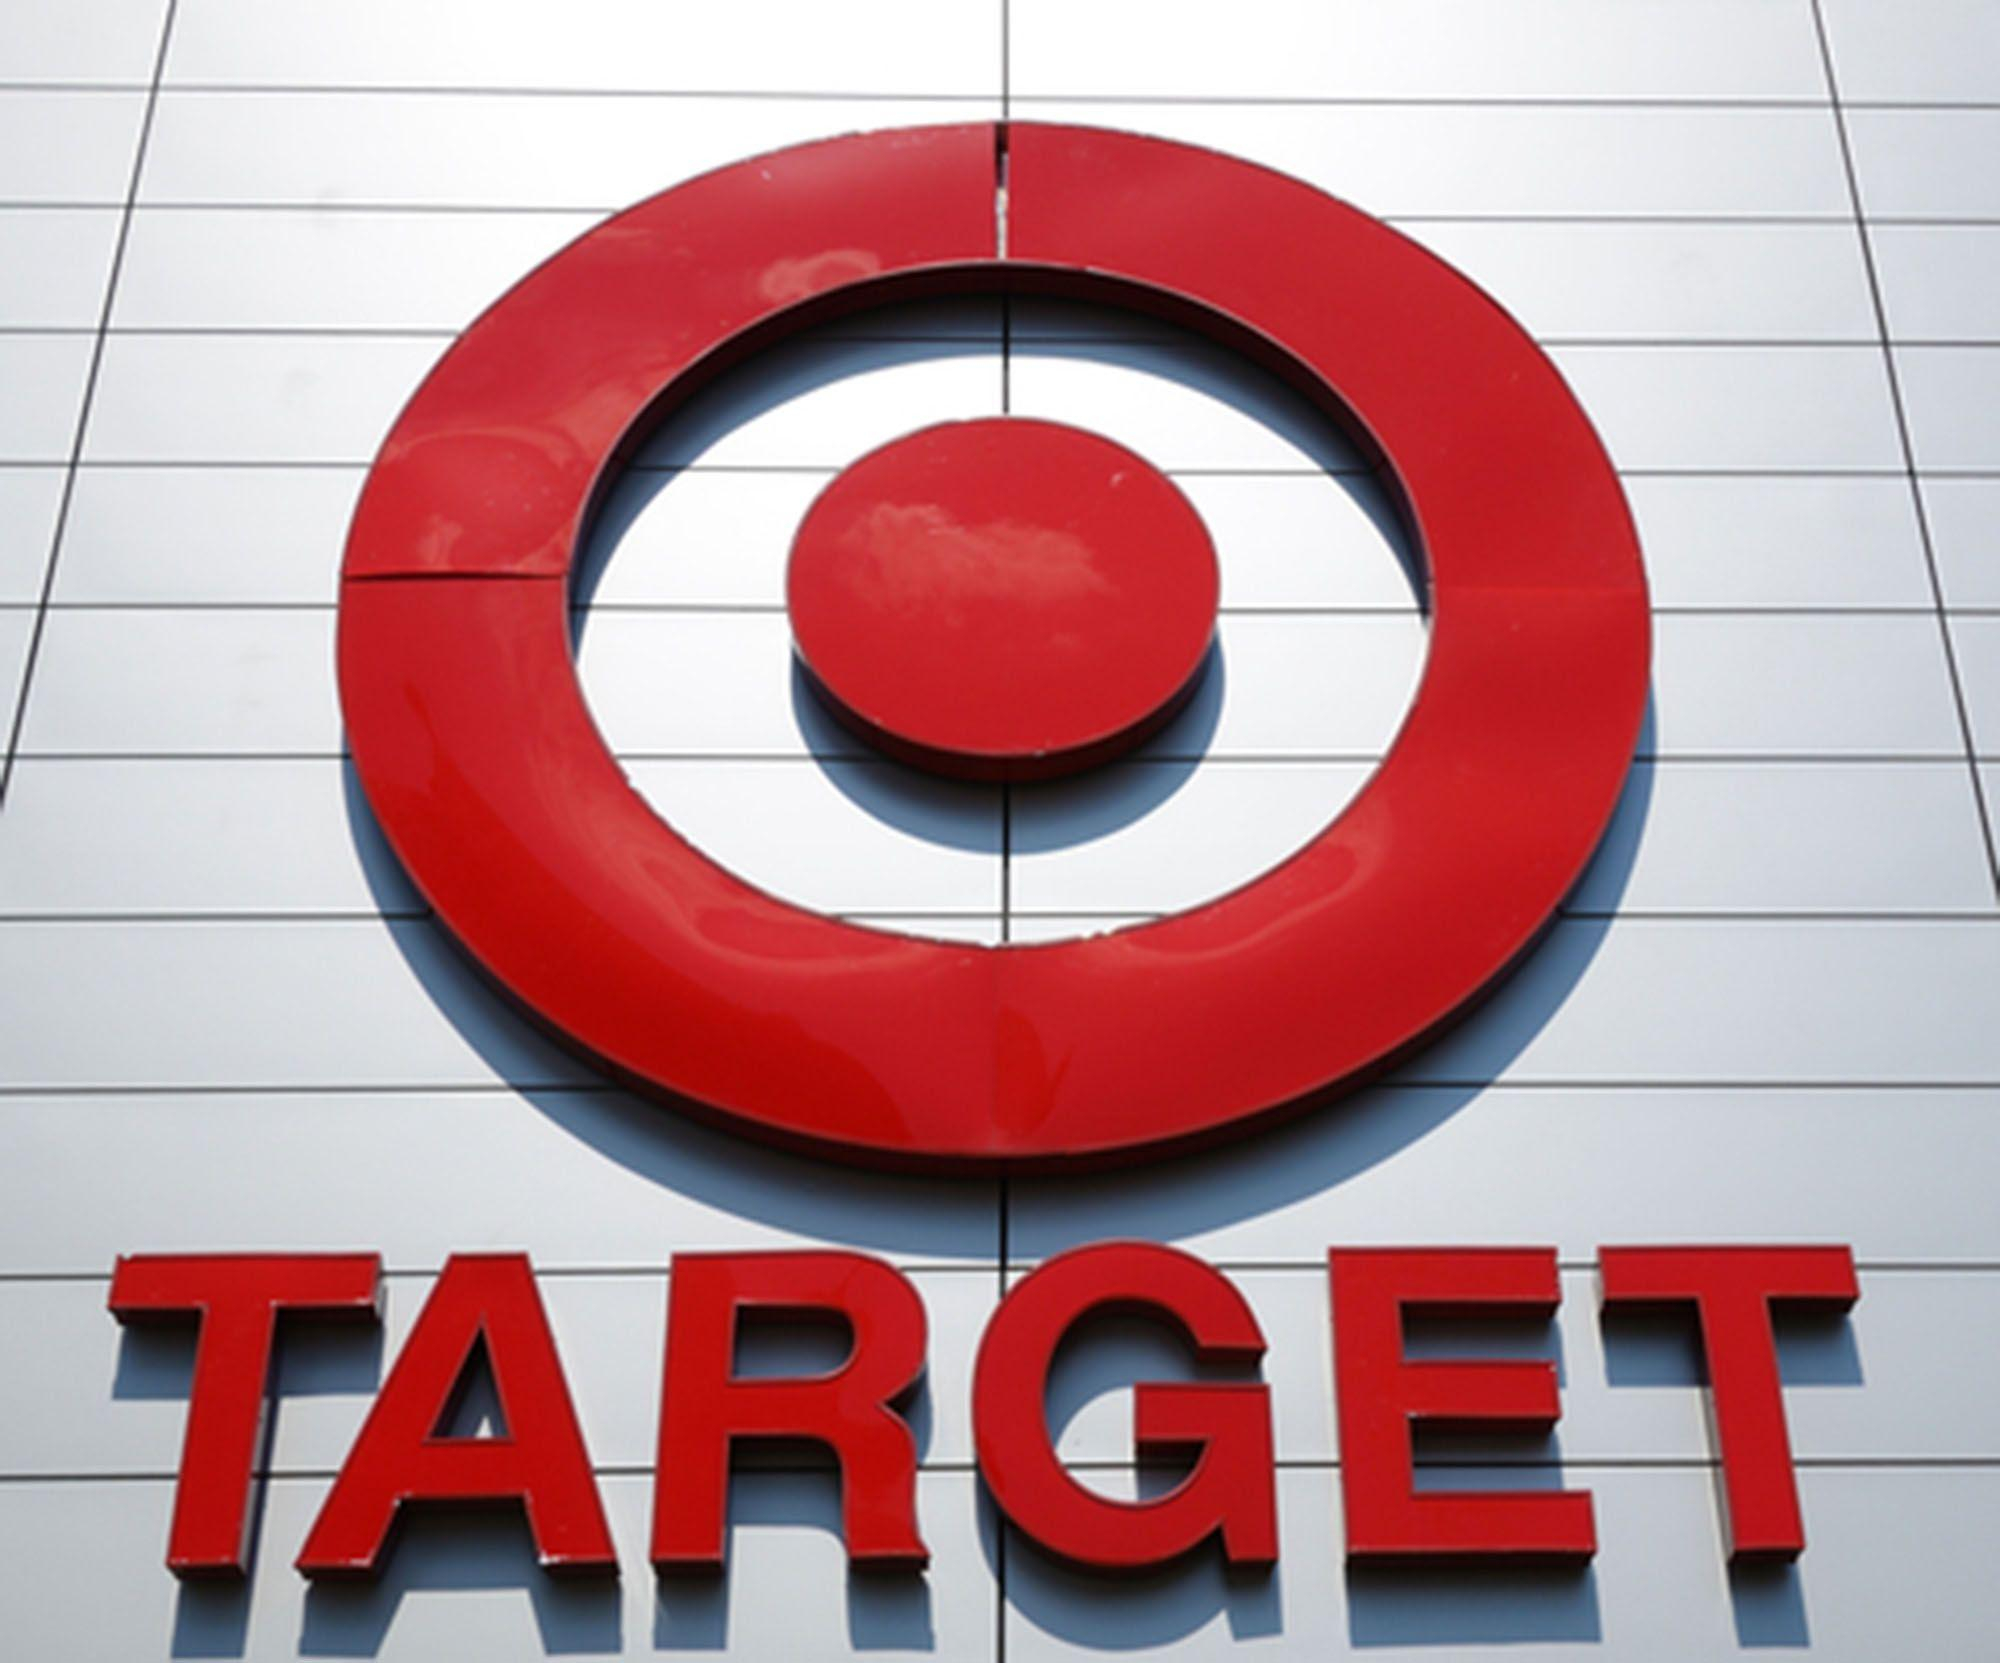 825a700dbe3 Target launches 'tween' brand in time for back-to-school rush | The ...